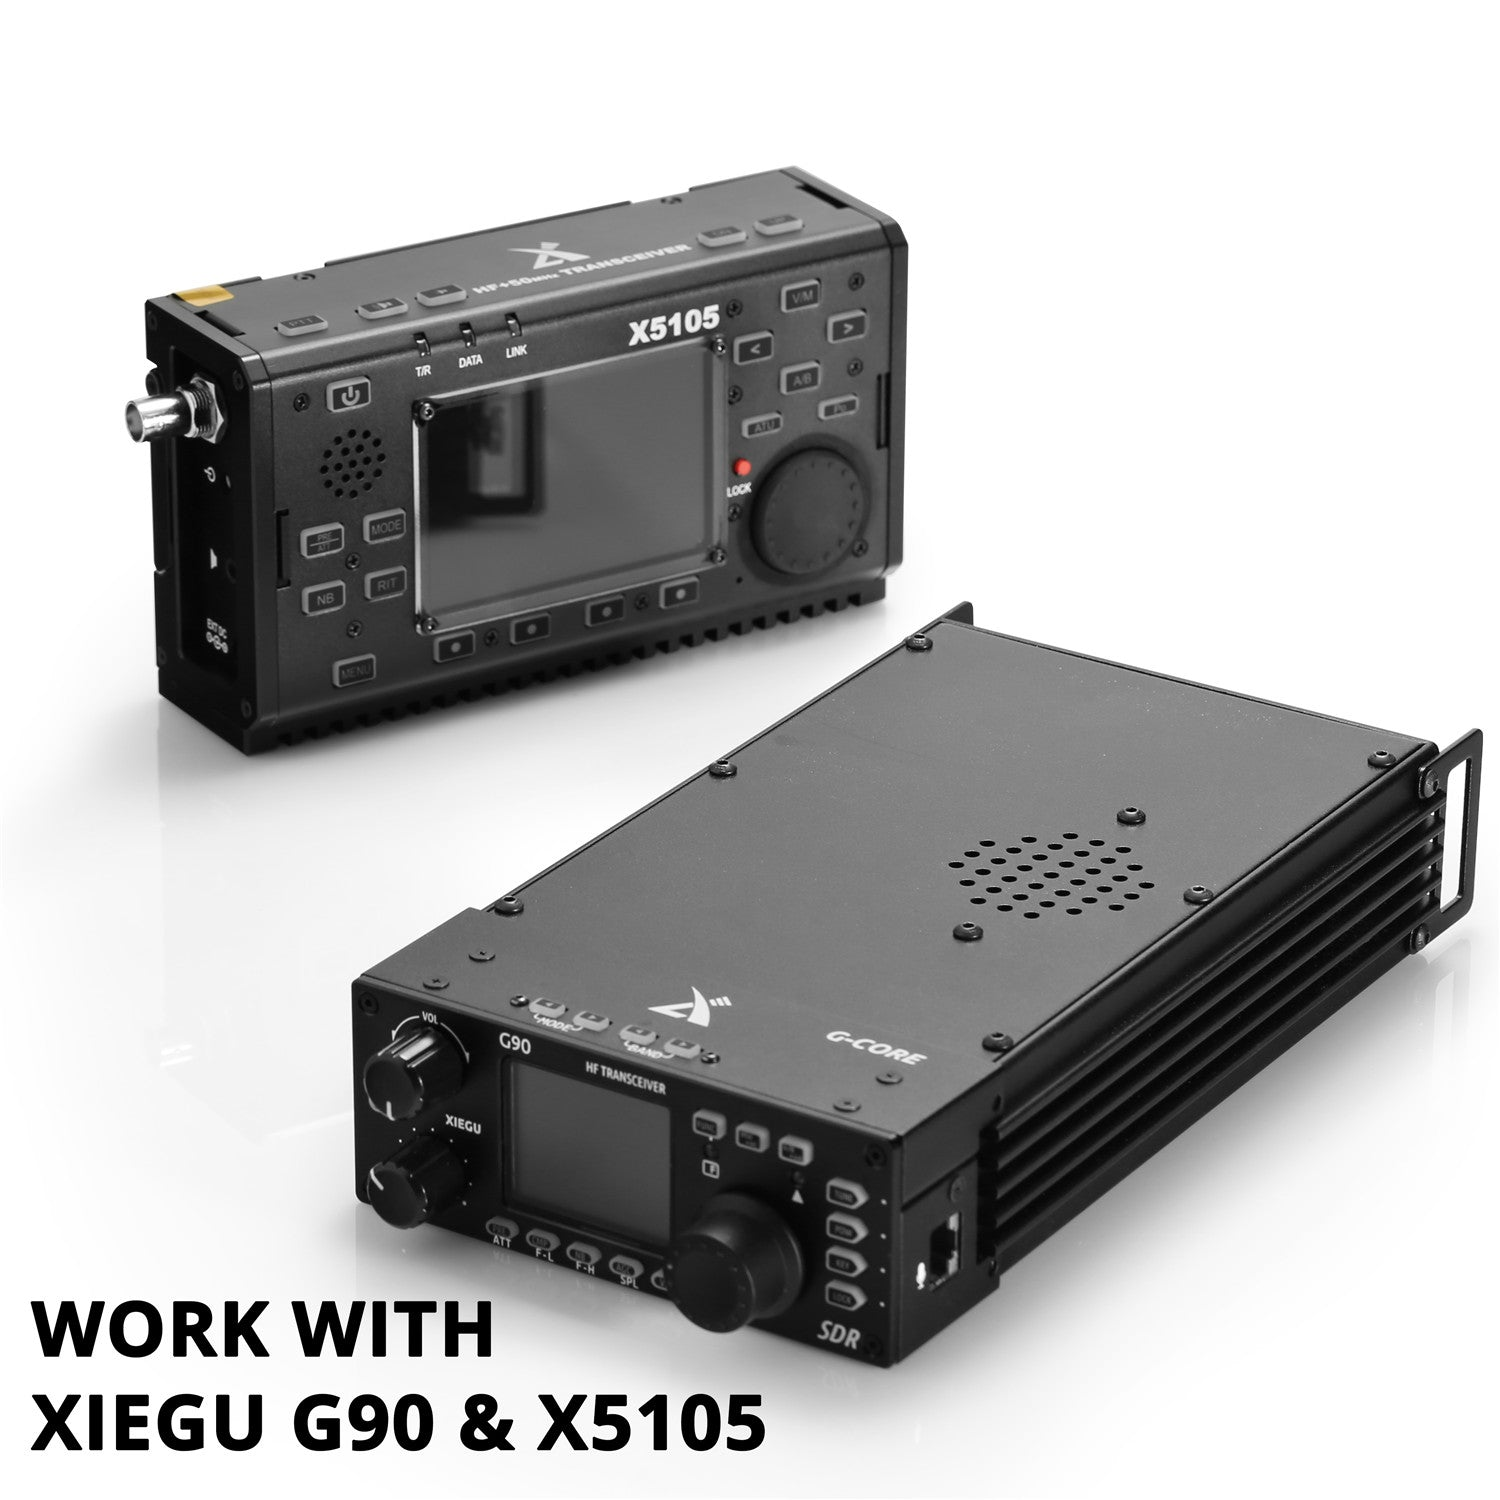 pecially Built for Xiegu G90 & X5105